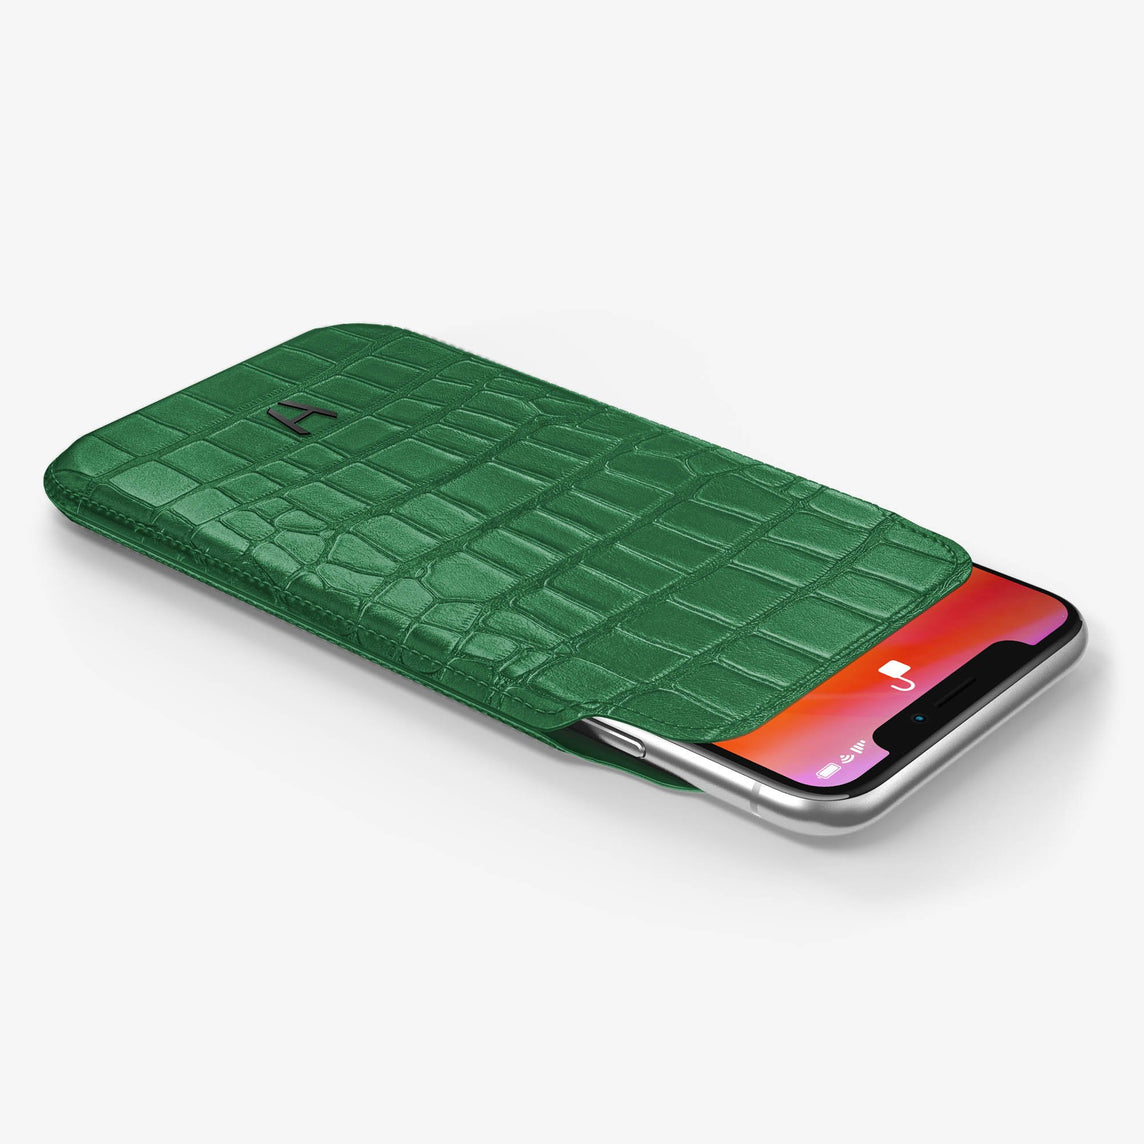 Alligator [iPhone Sleeve Case] [model:iphone-xs-case] [colour:green] [finishing:black]